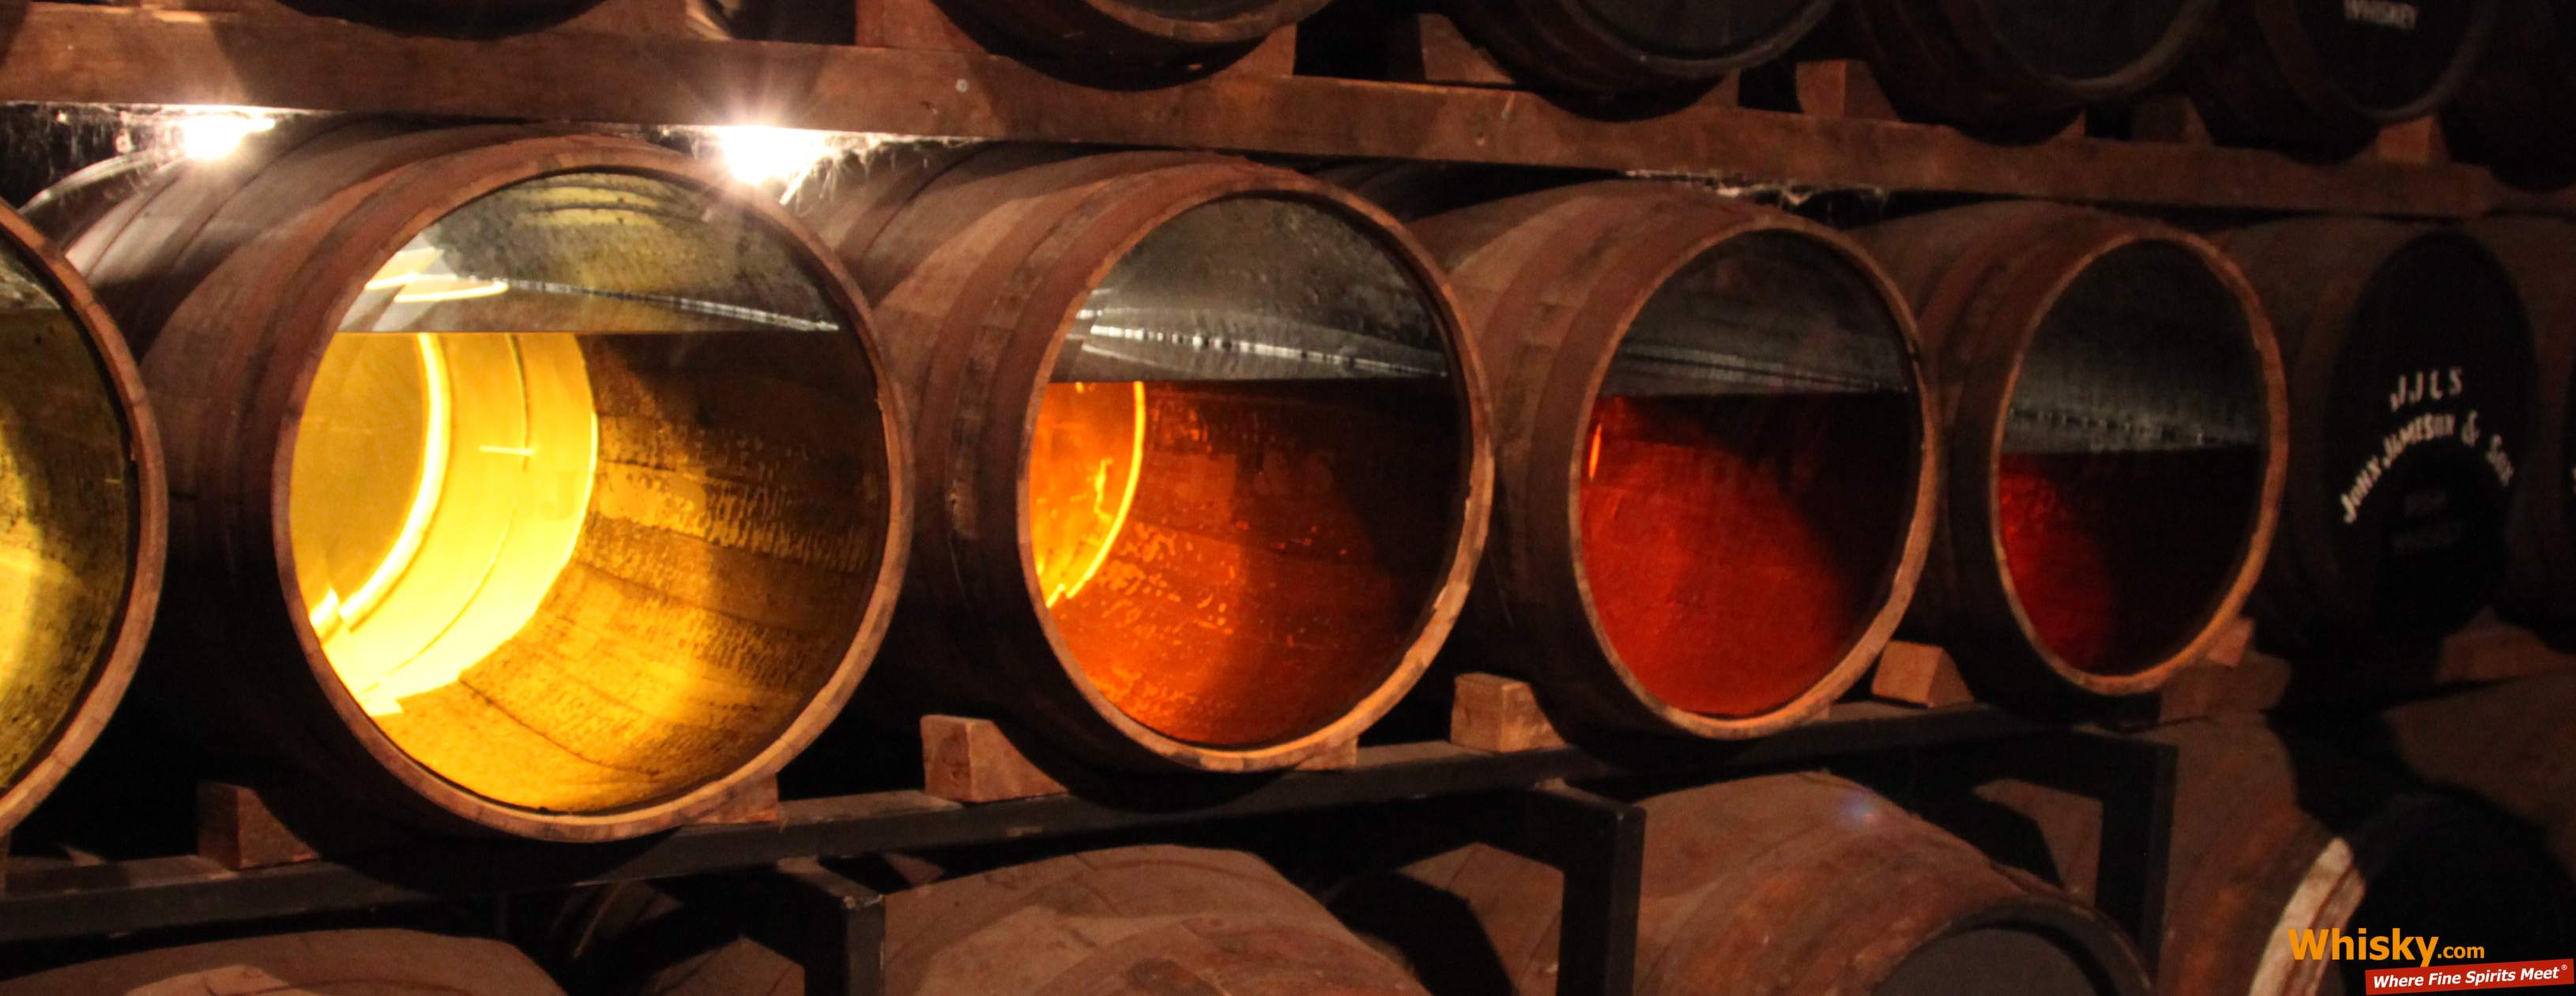 Different stages of whisky maturation